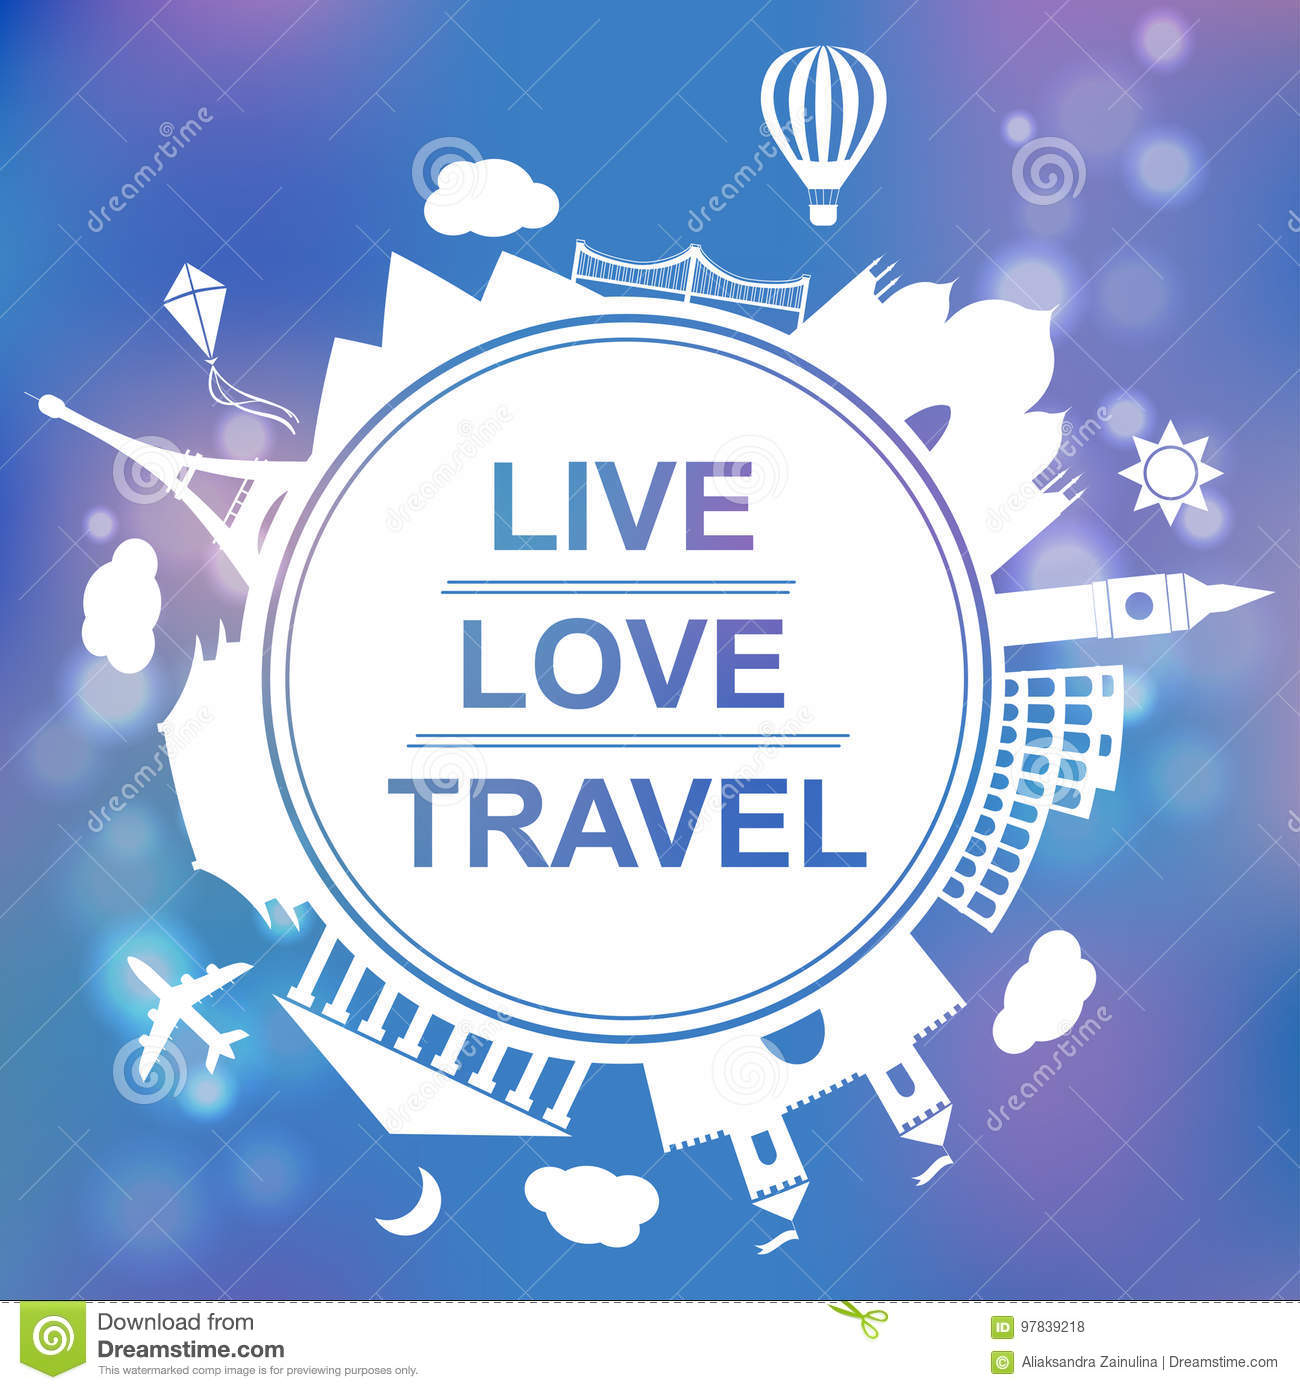 Live, love, travel concept vector illustration